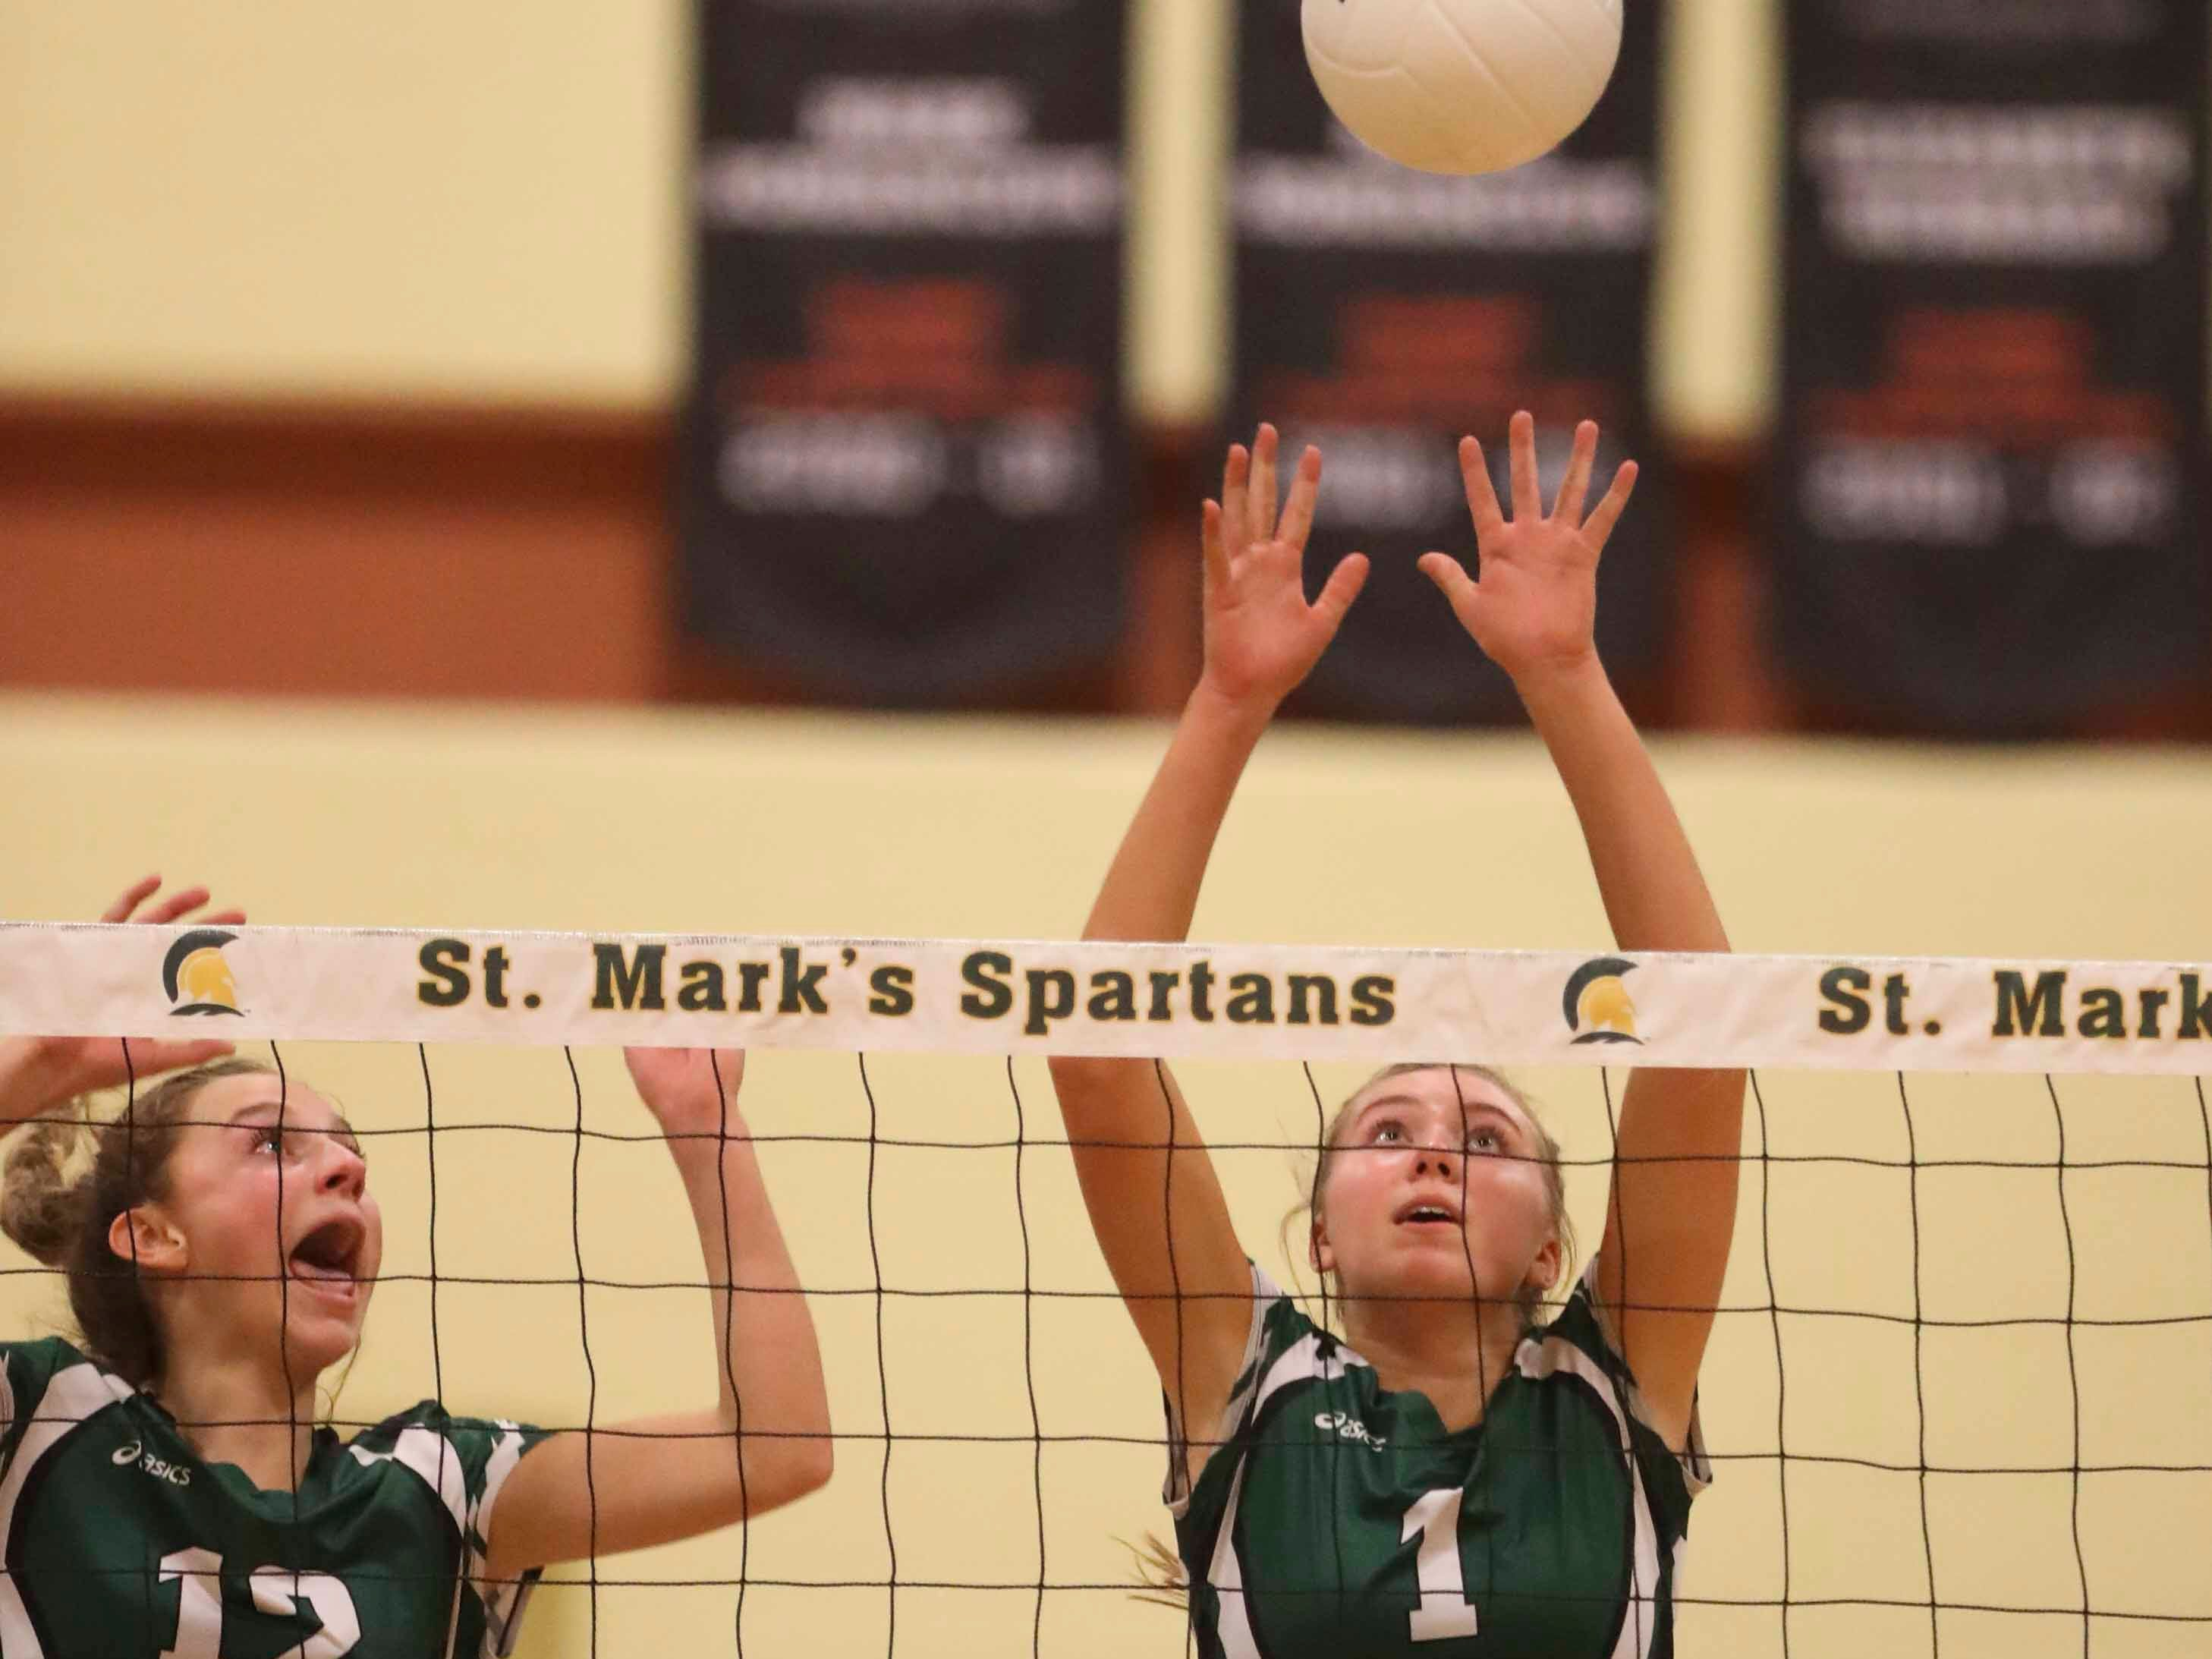 Archmere's Abigail Kates (left) and Julia Kochie work at the net on defense as the Auks advance to Monday's final in the DIAA state tournament Thursday at St. Mark's High School.